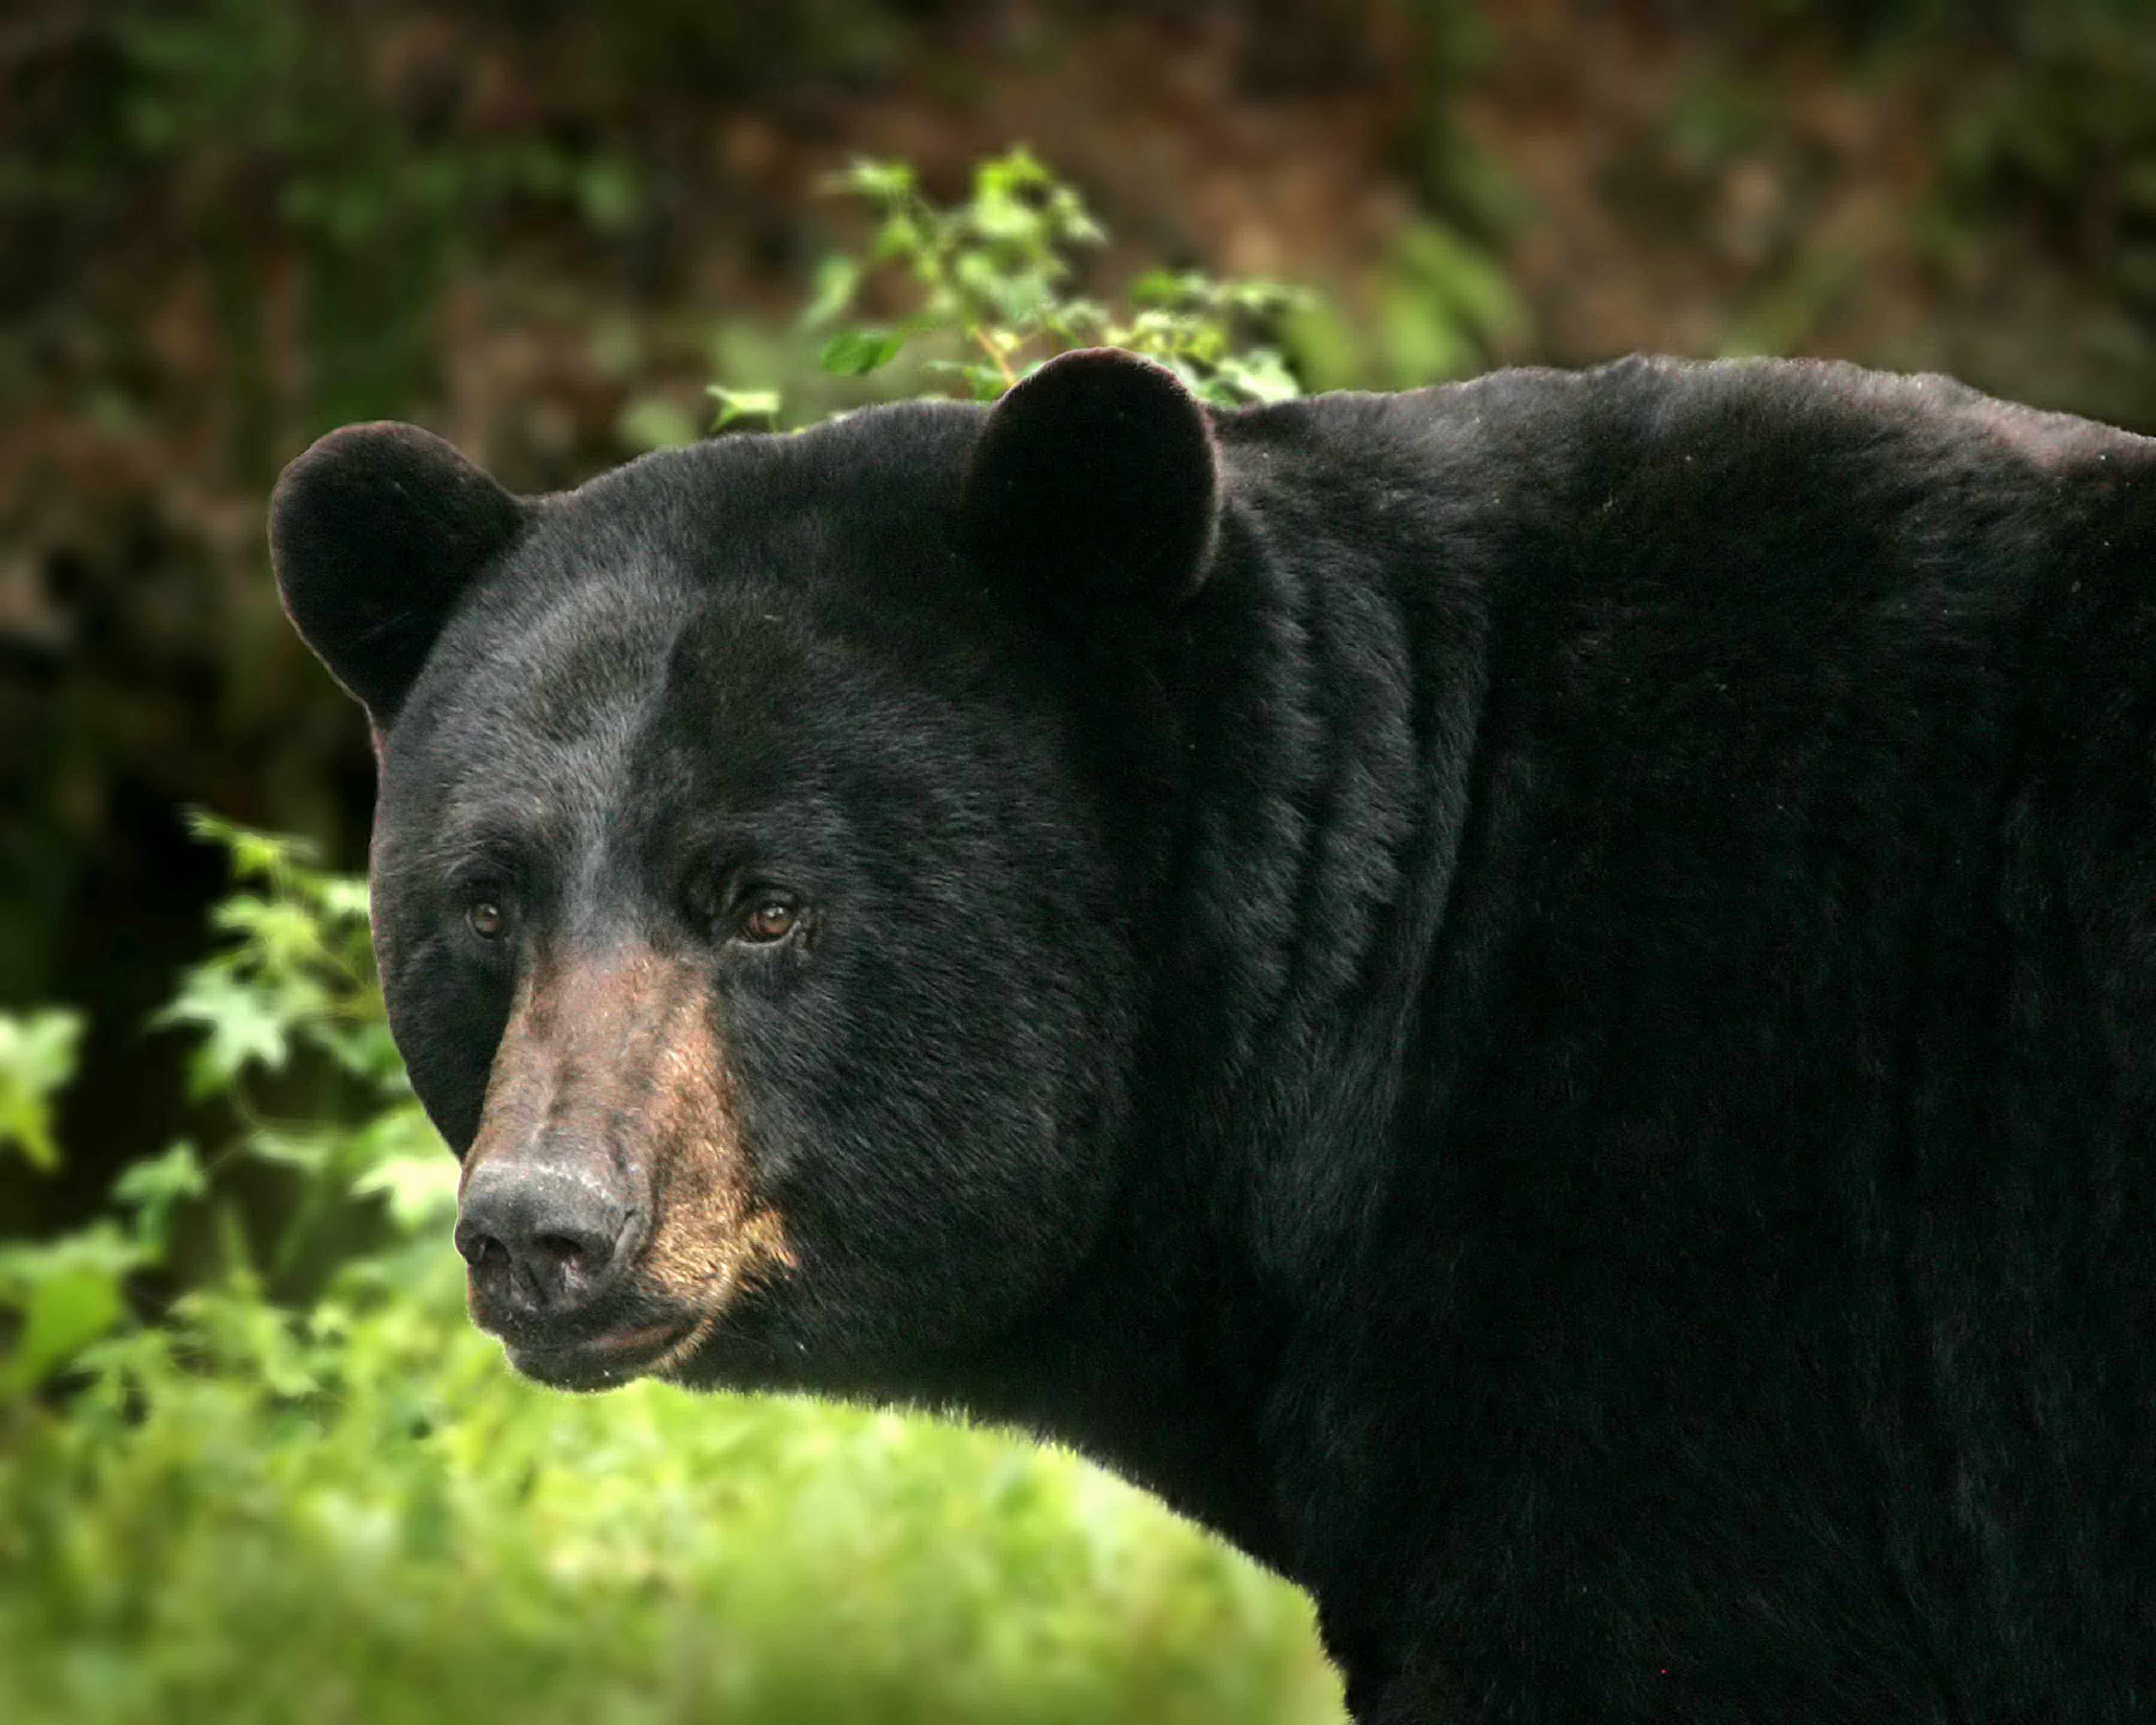 5 Facts About Black Bears